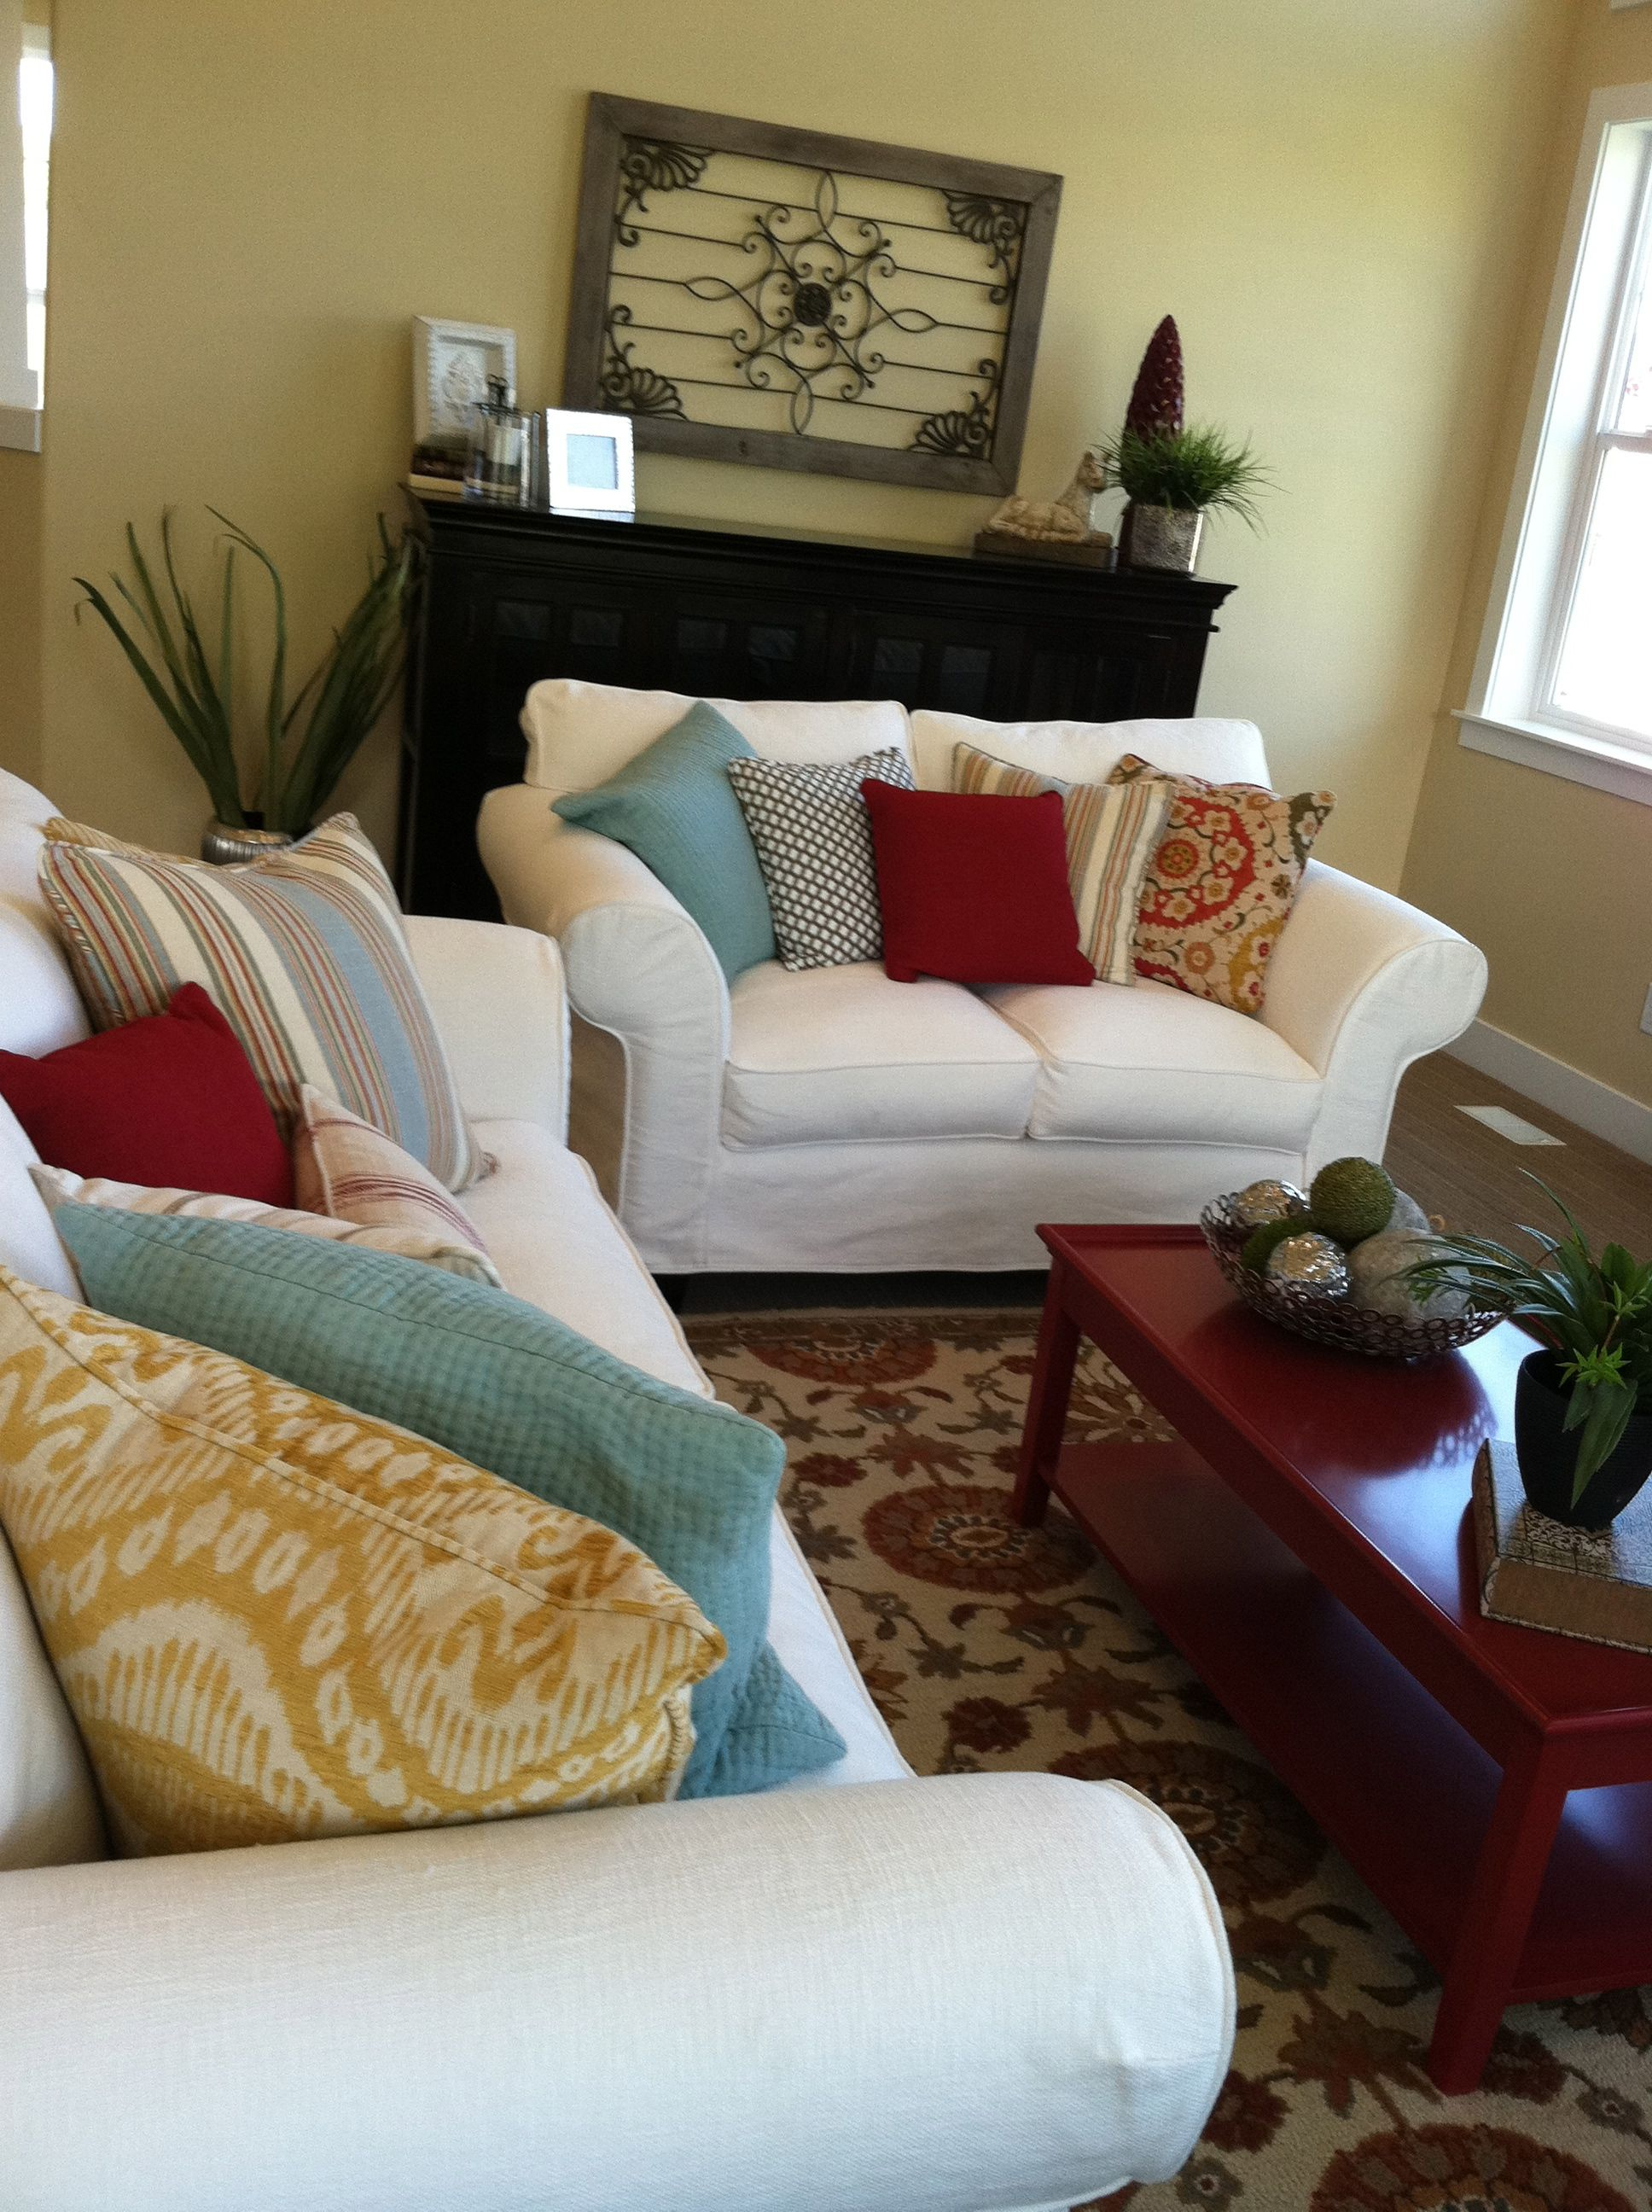 Love the multicolored pillows and how they all tie together